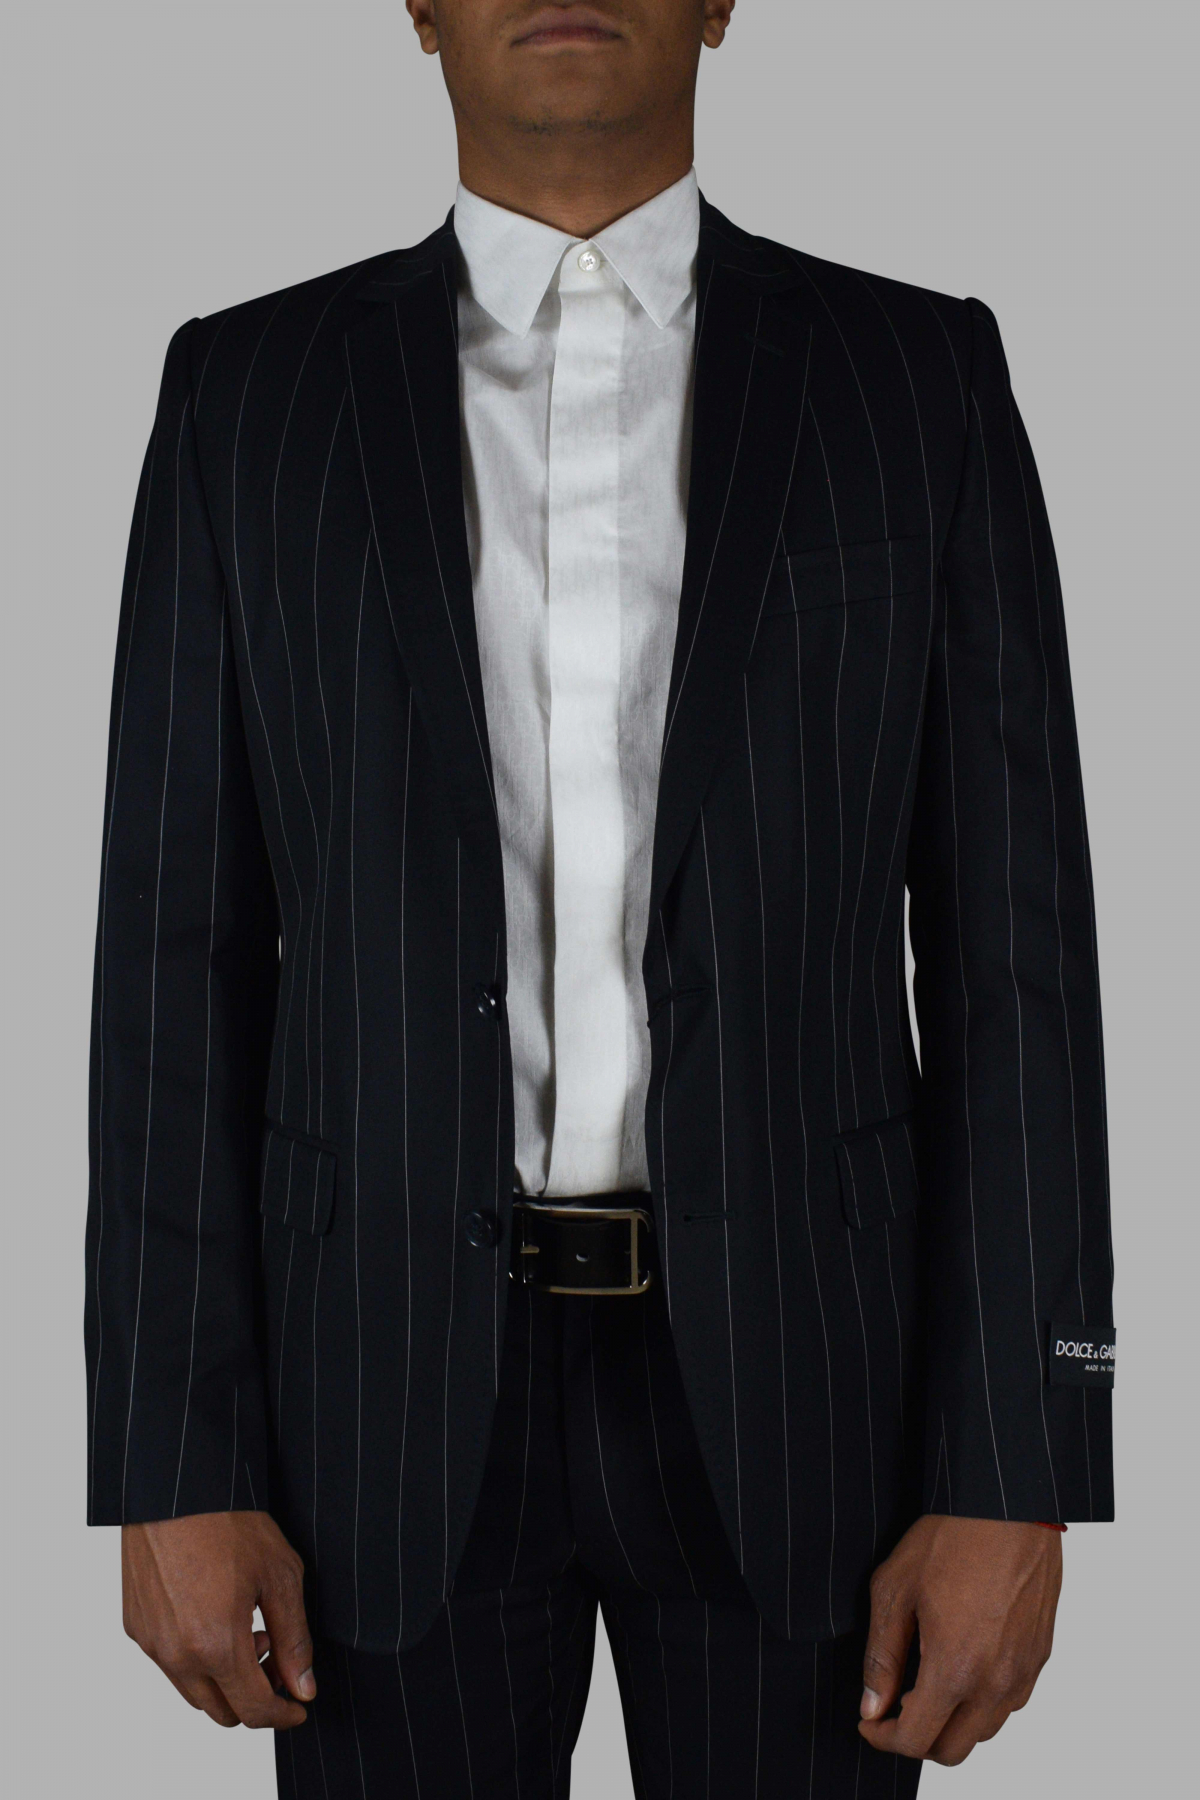 Two-piece suit from Dolce & Gabbana navy blue with stripes.